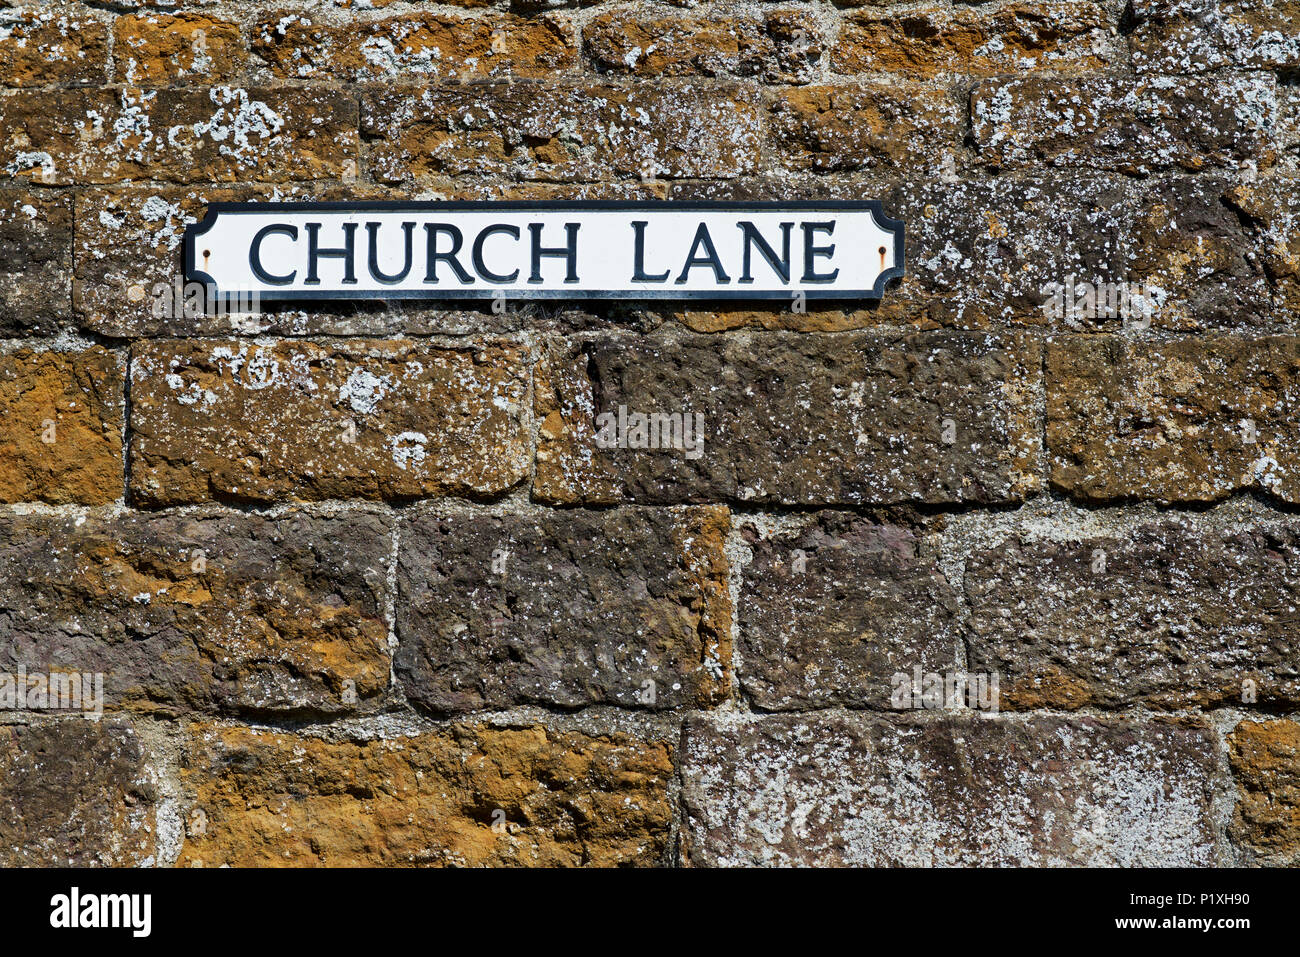 Sign: Church Lane, England UK - Stock Image